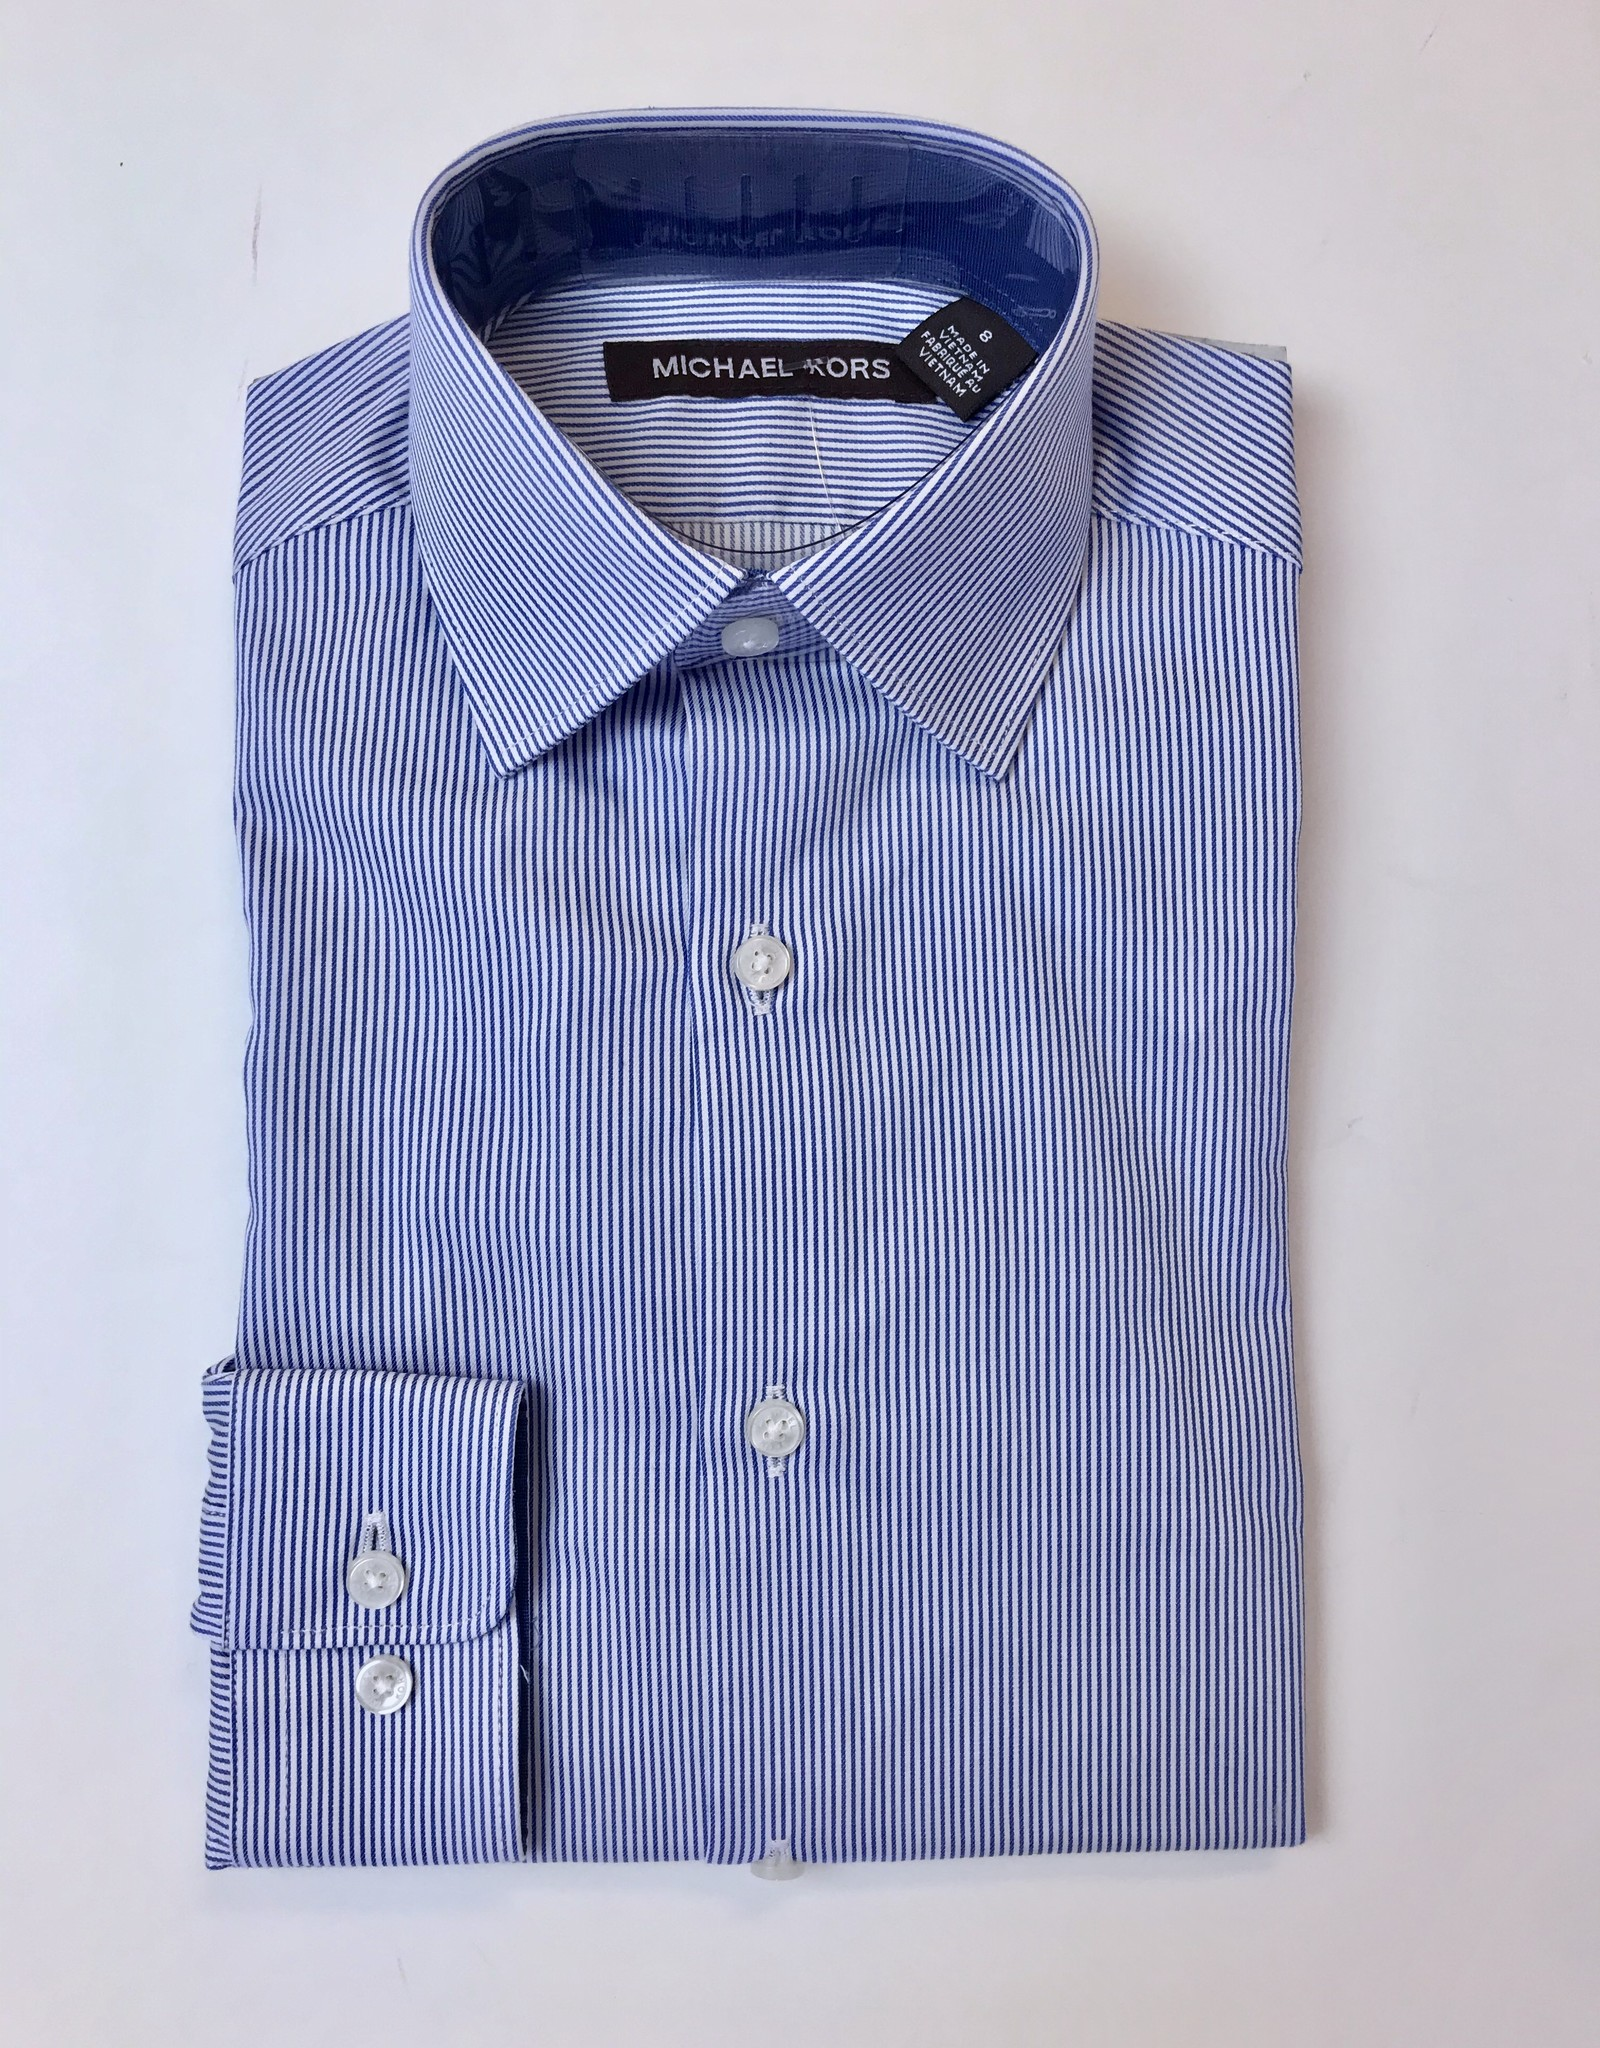 Michael Kors Shirt Blue University Stripe